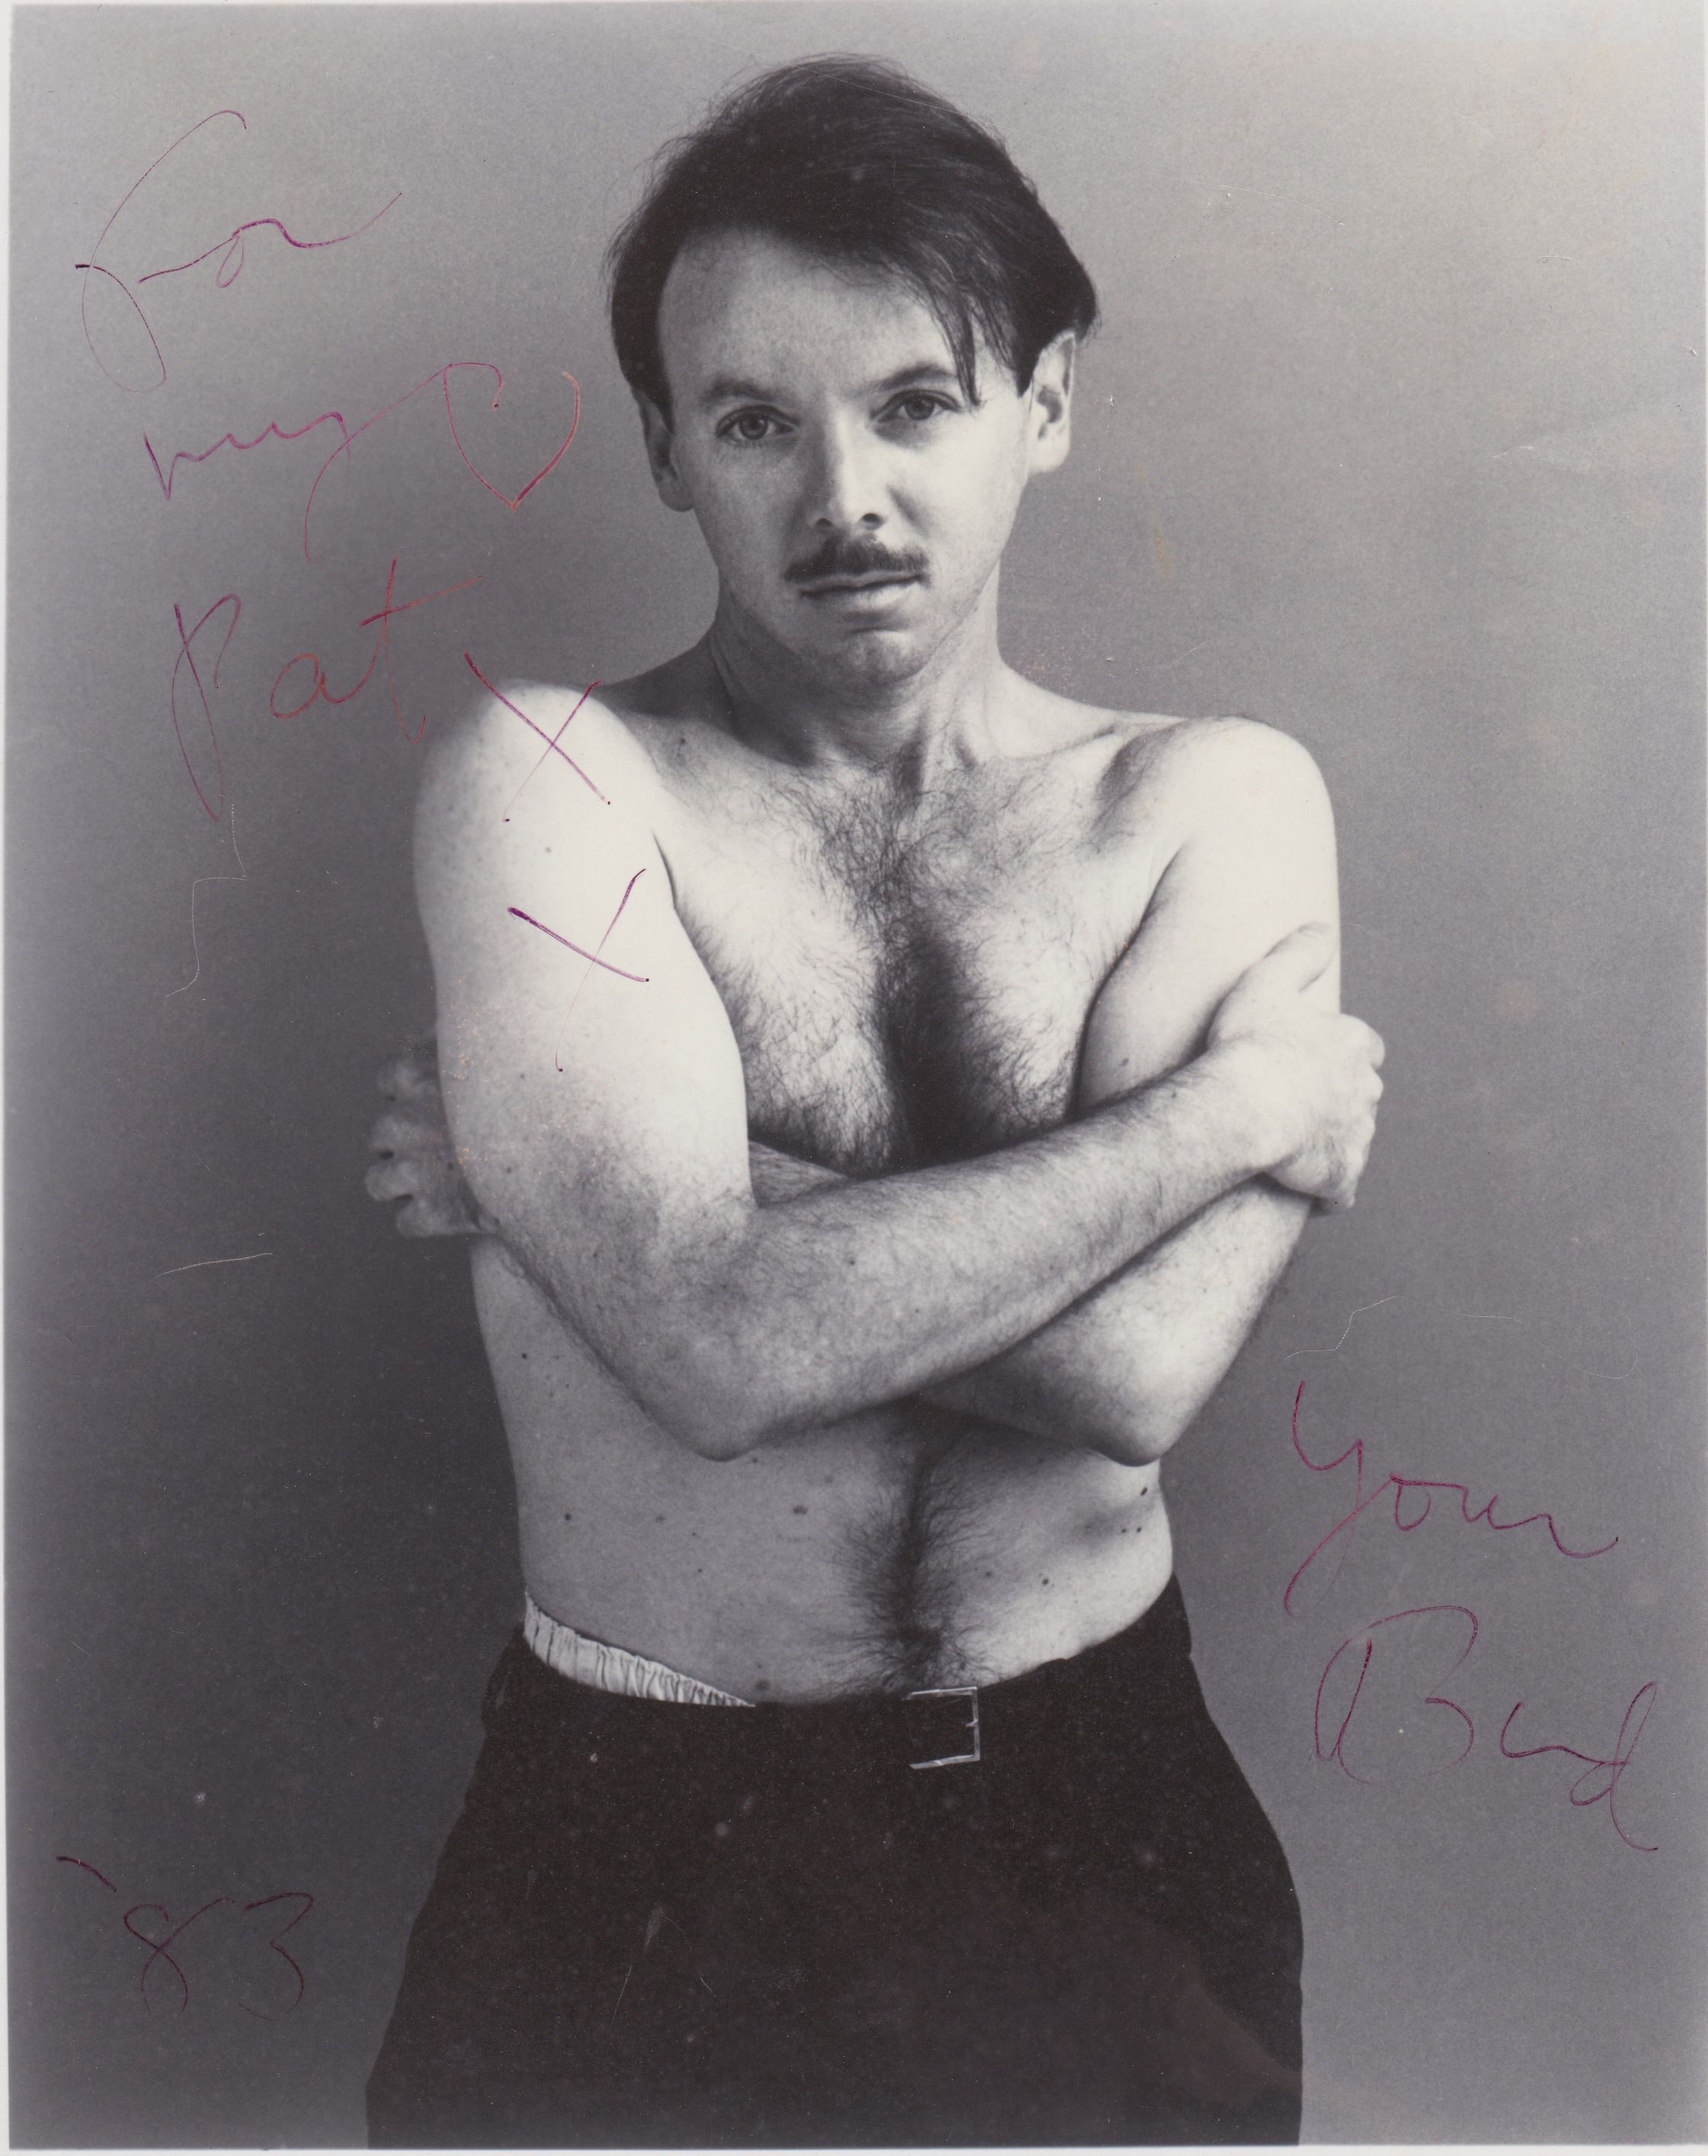 Bud Cort--you are a freak!